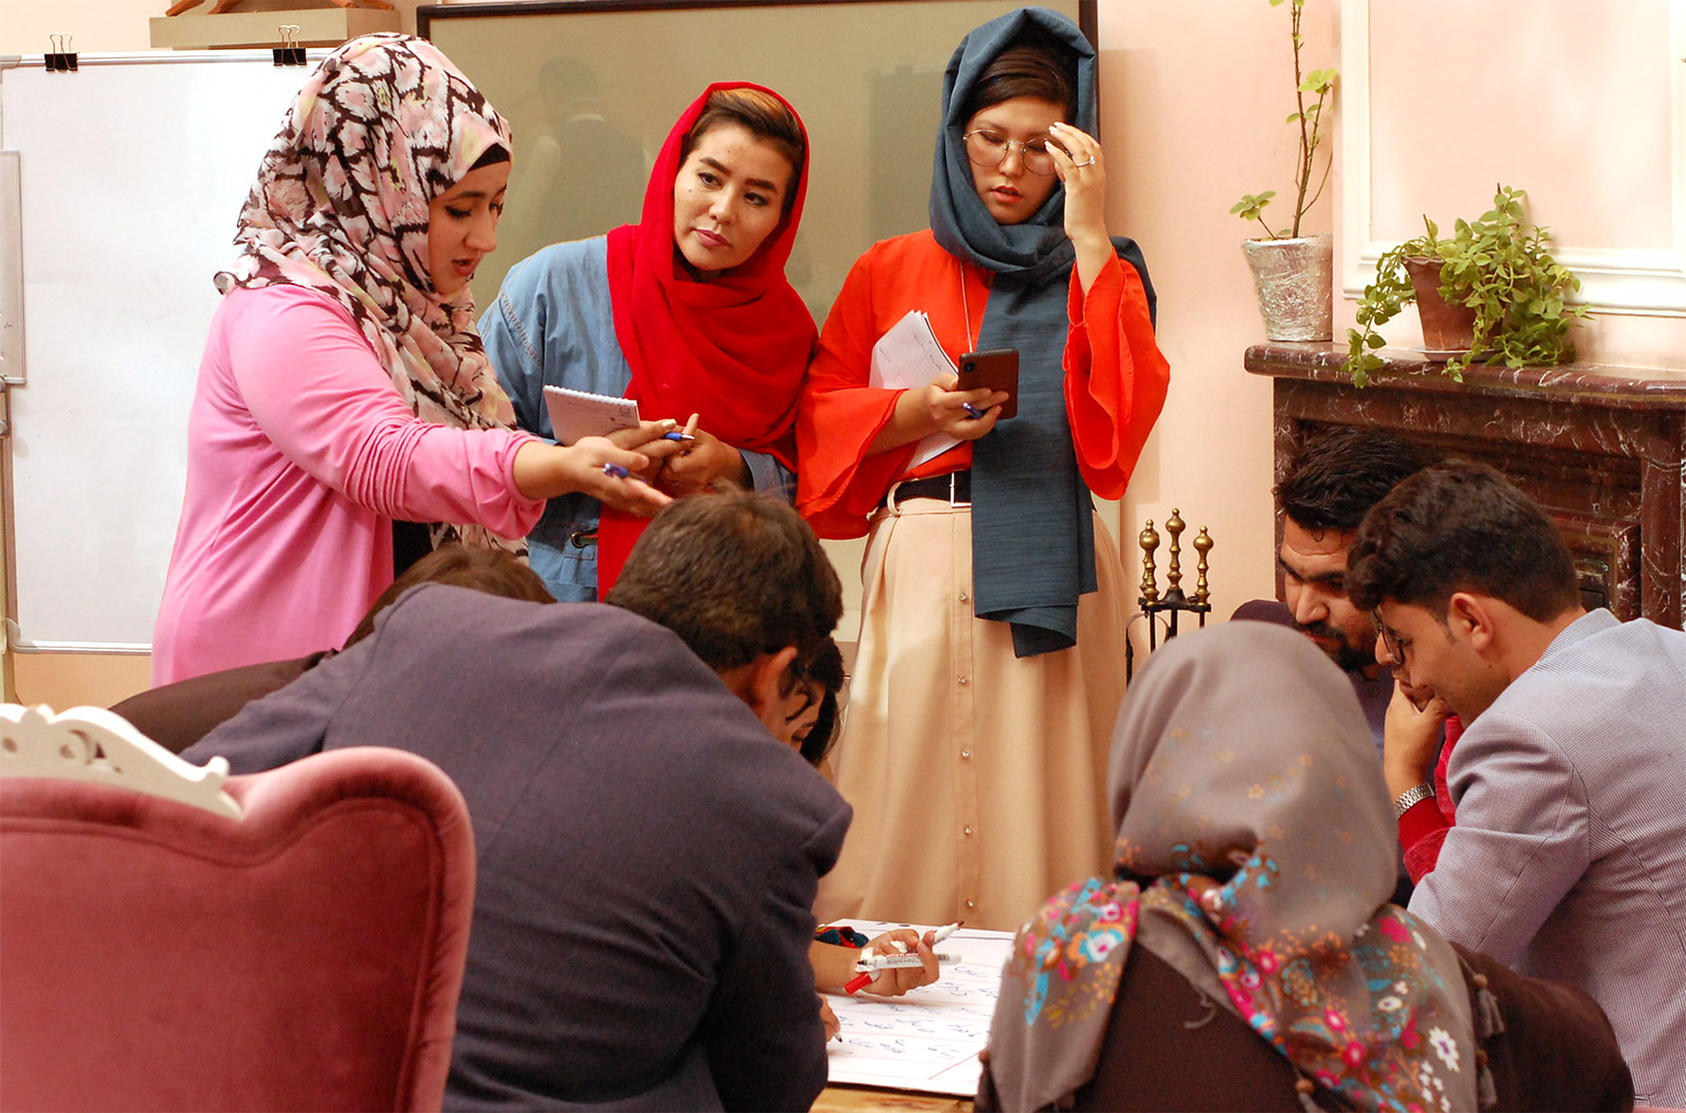 Afghans in the city of Mazar-i-Sharif discuss ways to build a national consensus on protecting women's rights in peace talks with the Taliban. The dialogue was one of a series hosted by USIP to broaden roles of women and youth in the peace process.